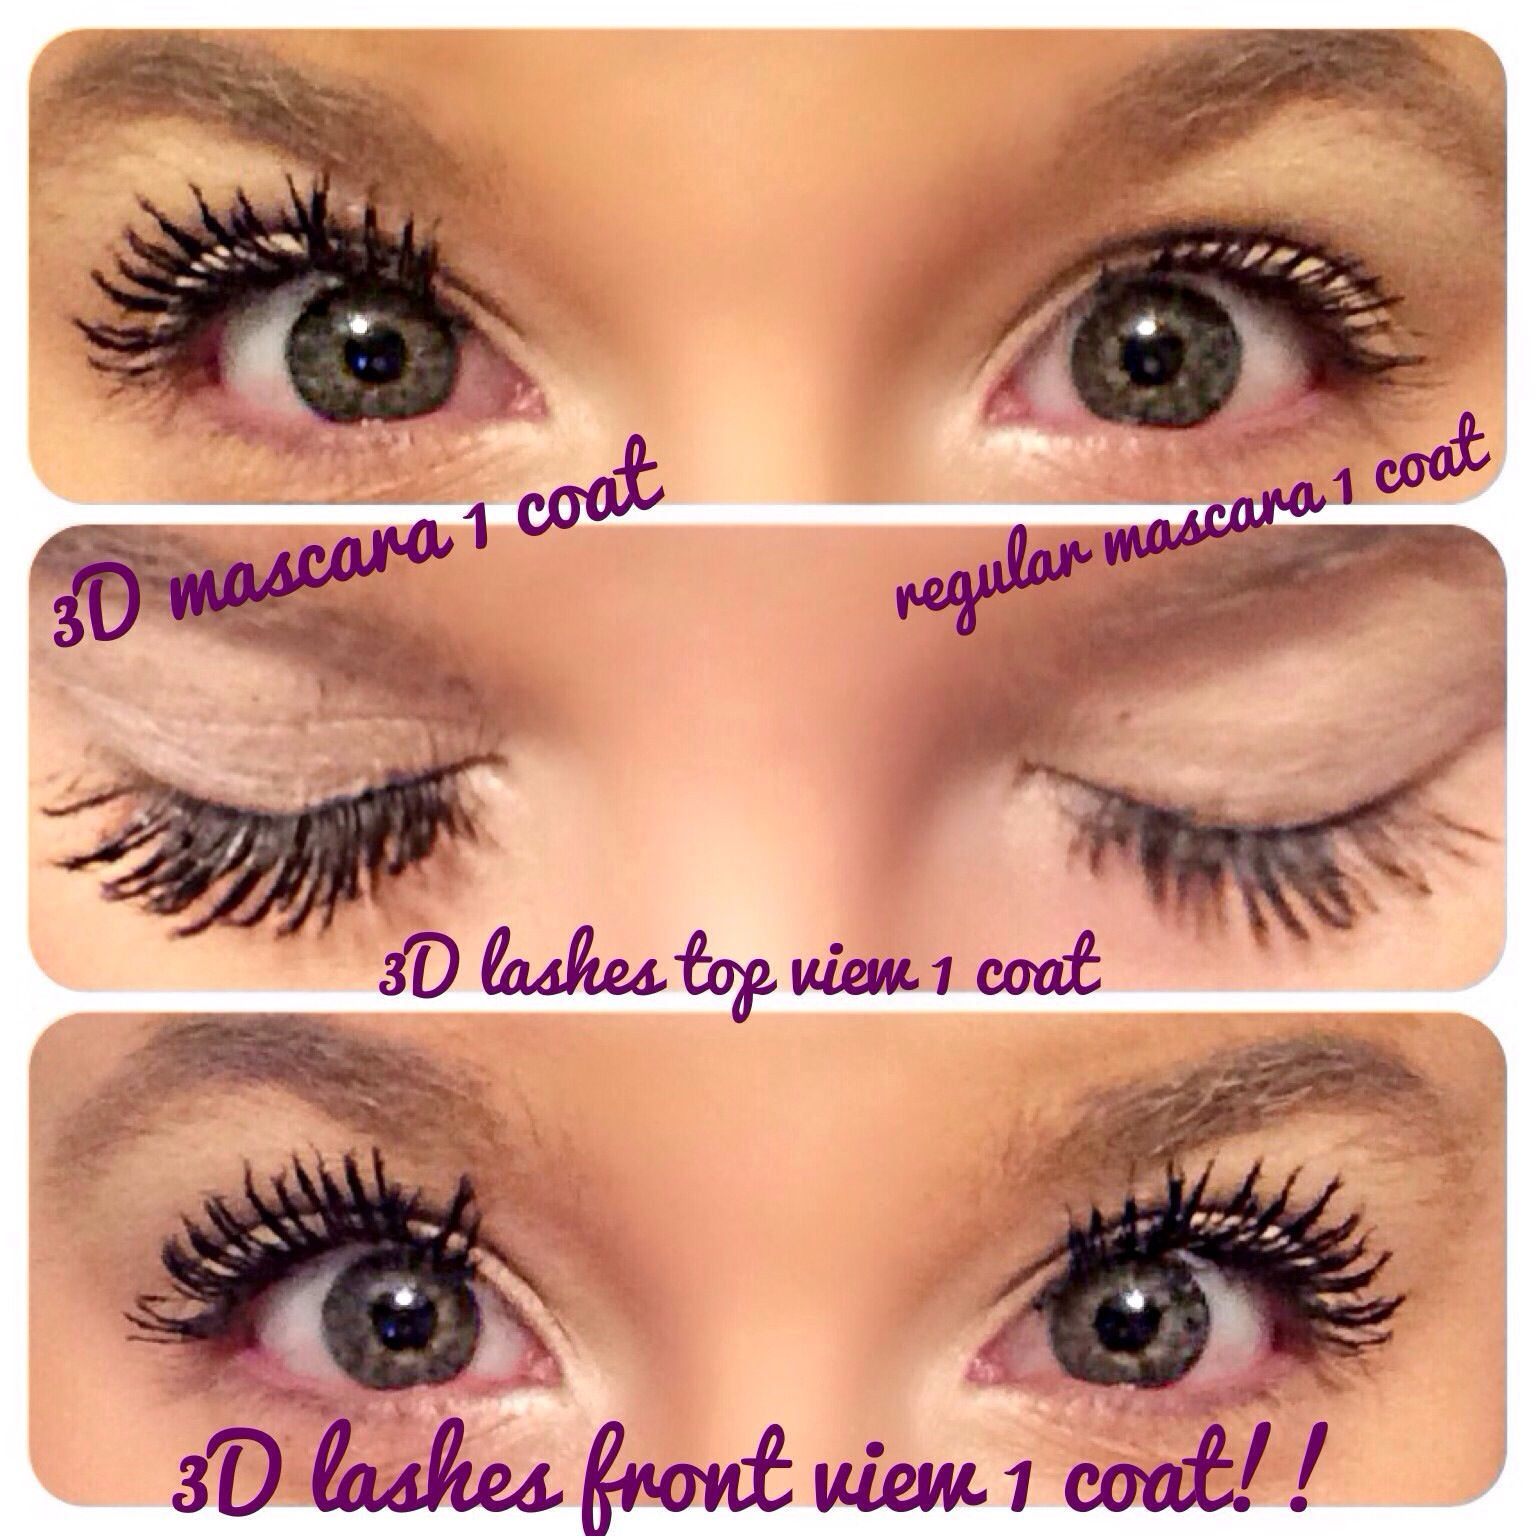 c0a72fdd3e5 So awesome to see the comparison between 1 coat or regular mascara compared  to 3D fiberlashes